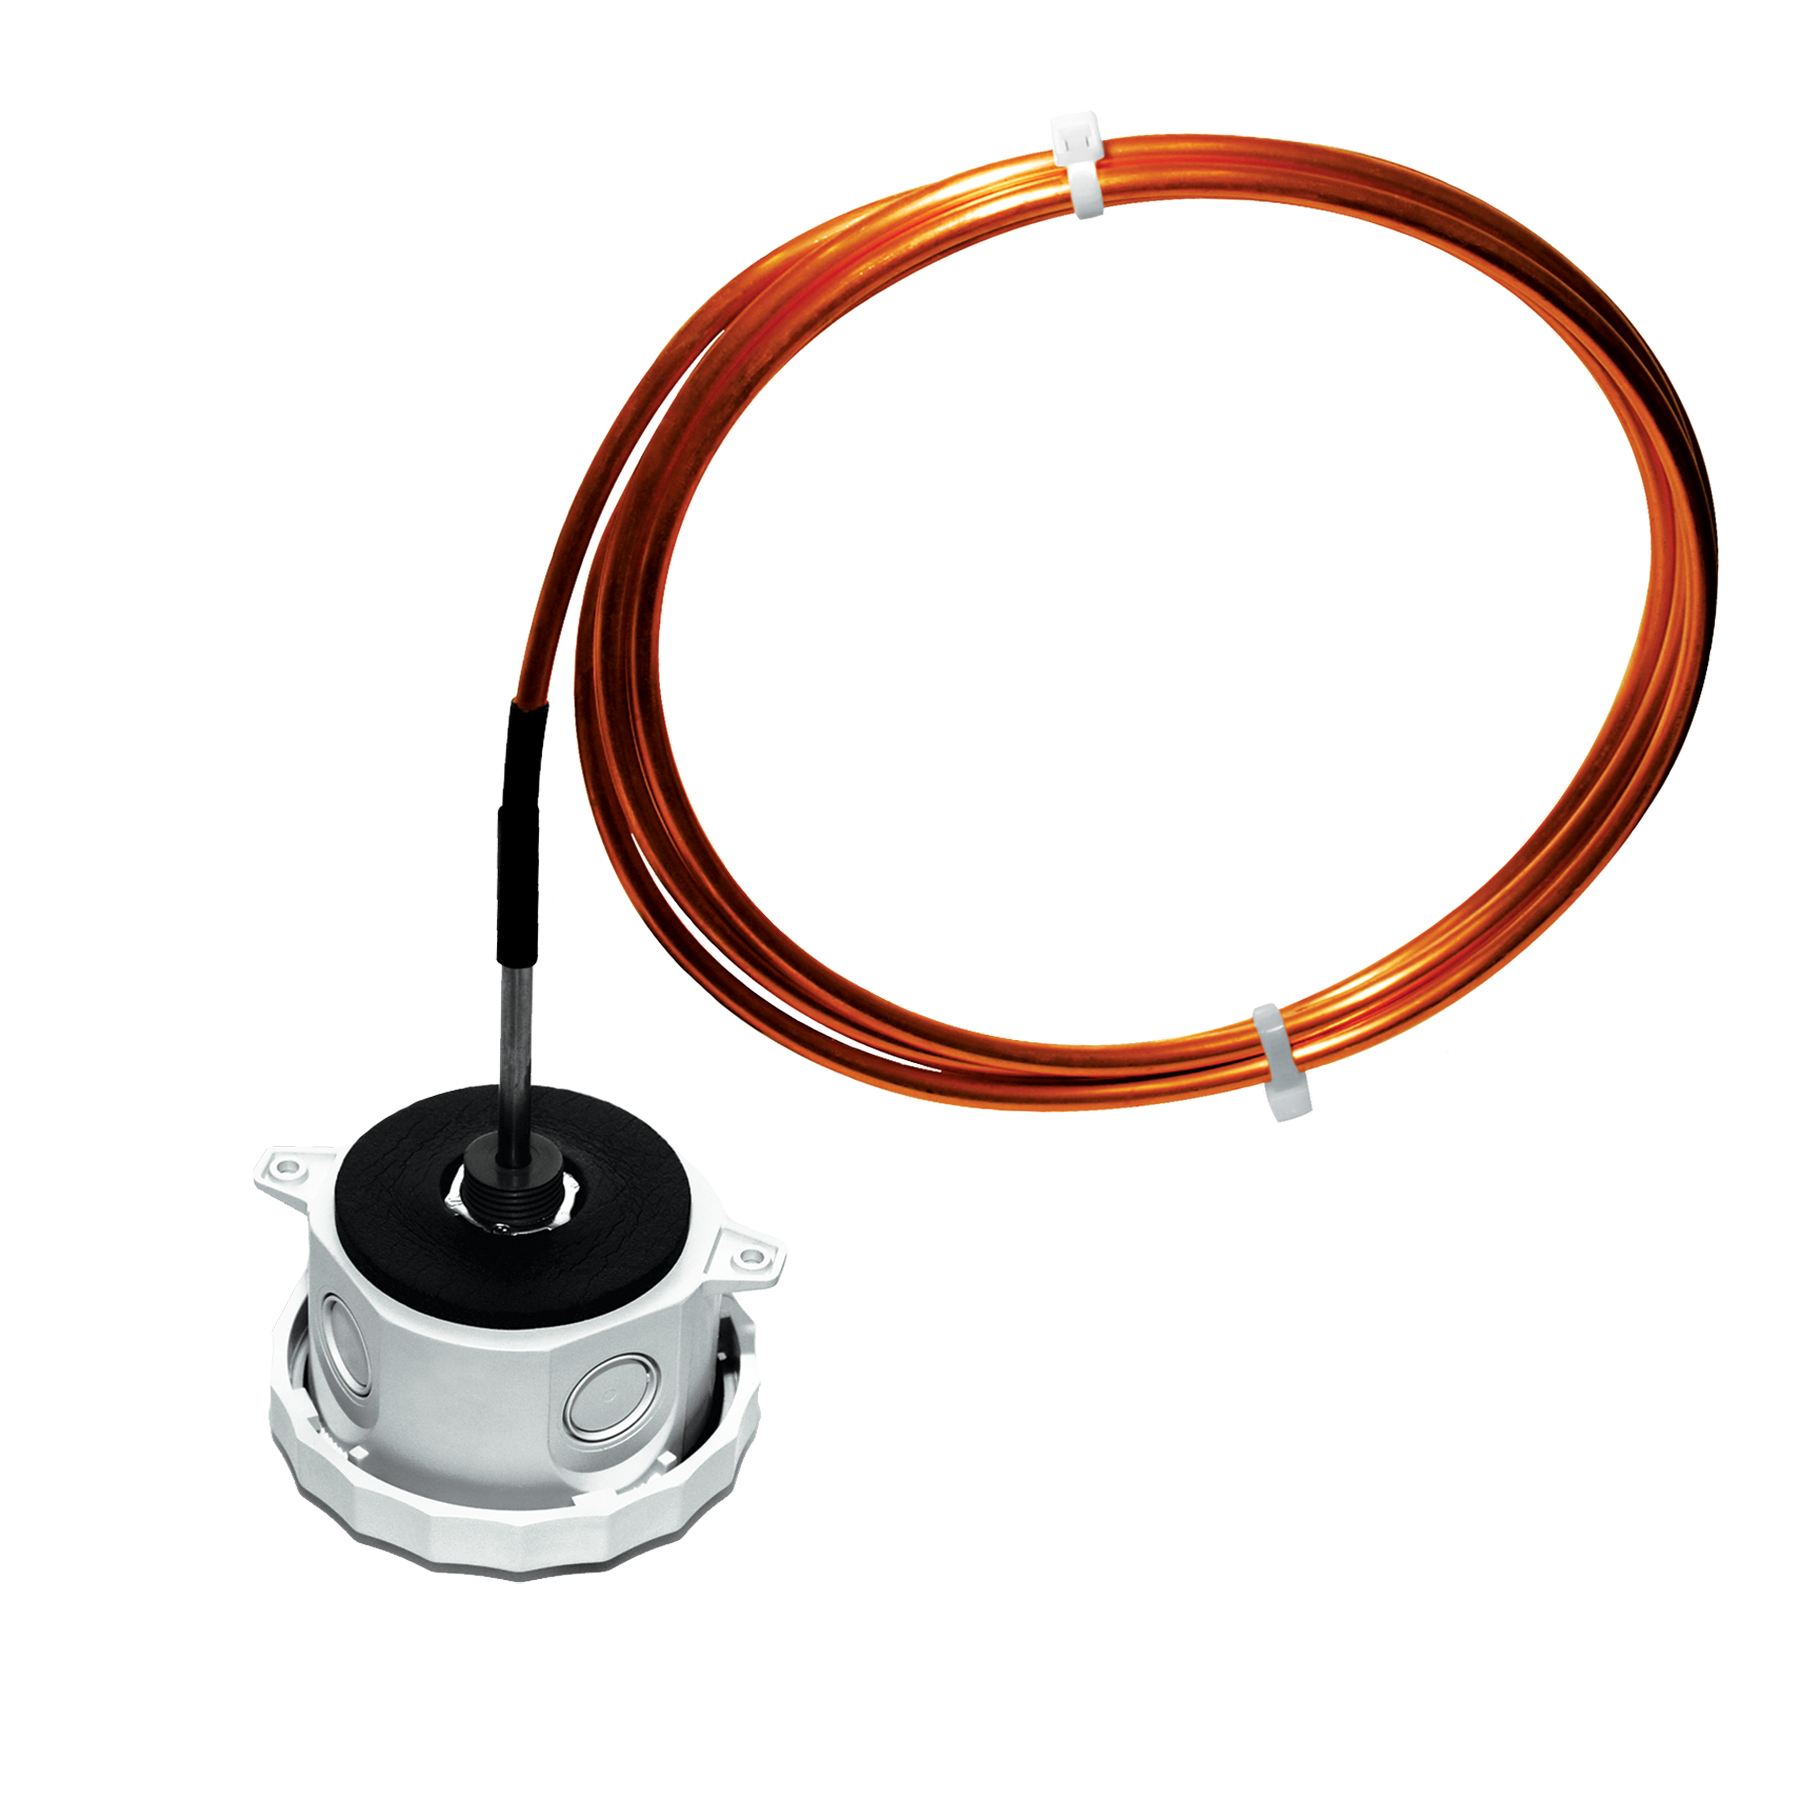 ACI A/100KS-A-50'-EH Averaging Temperature Sensor